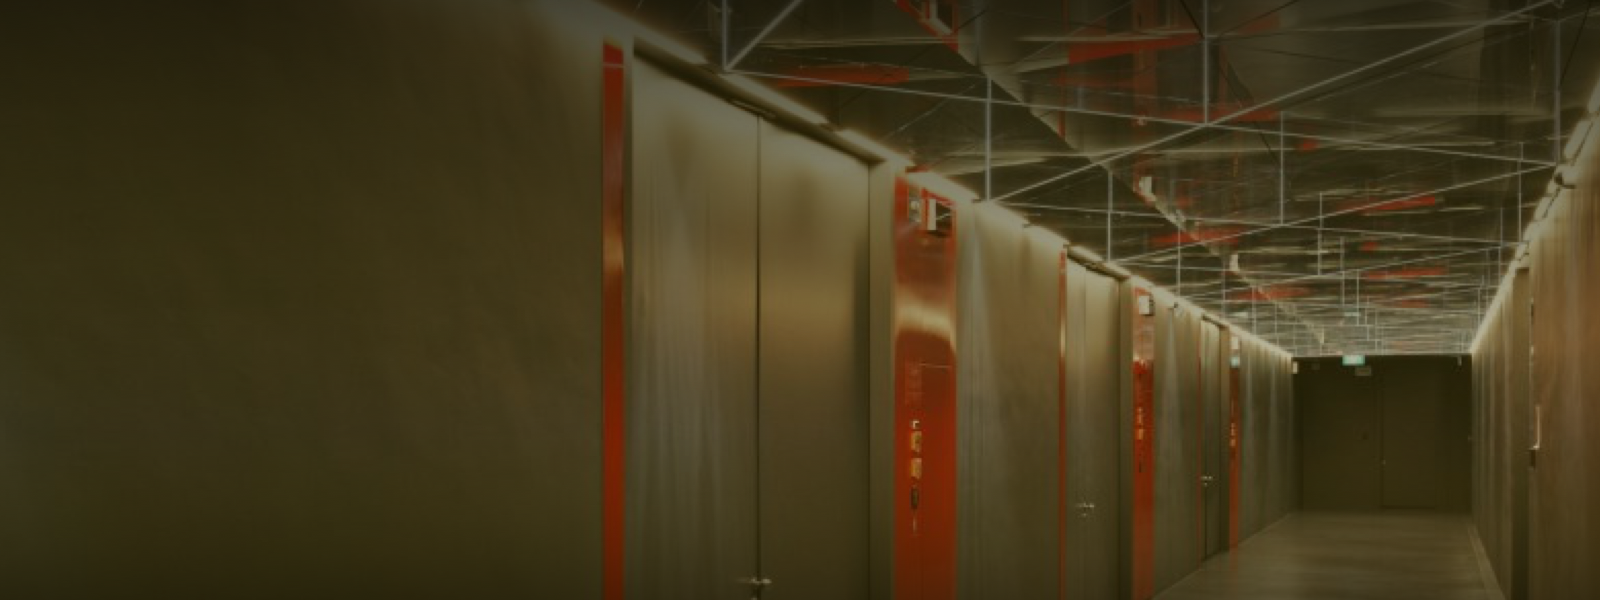 Malca-Amit's Singapore vault and secure storage facilities